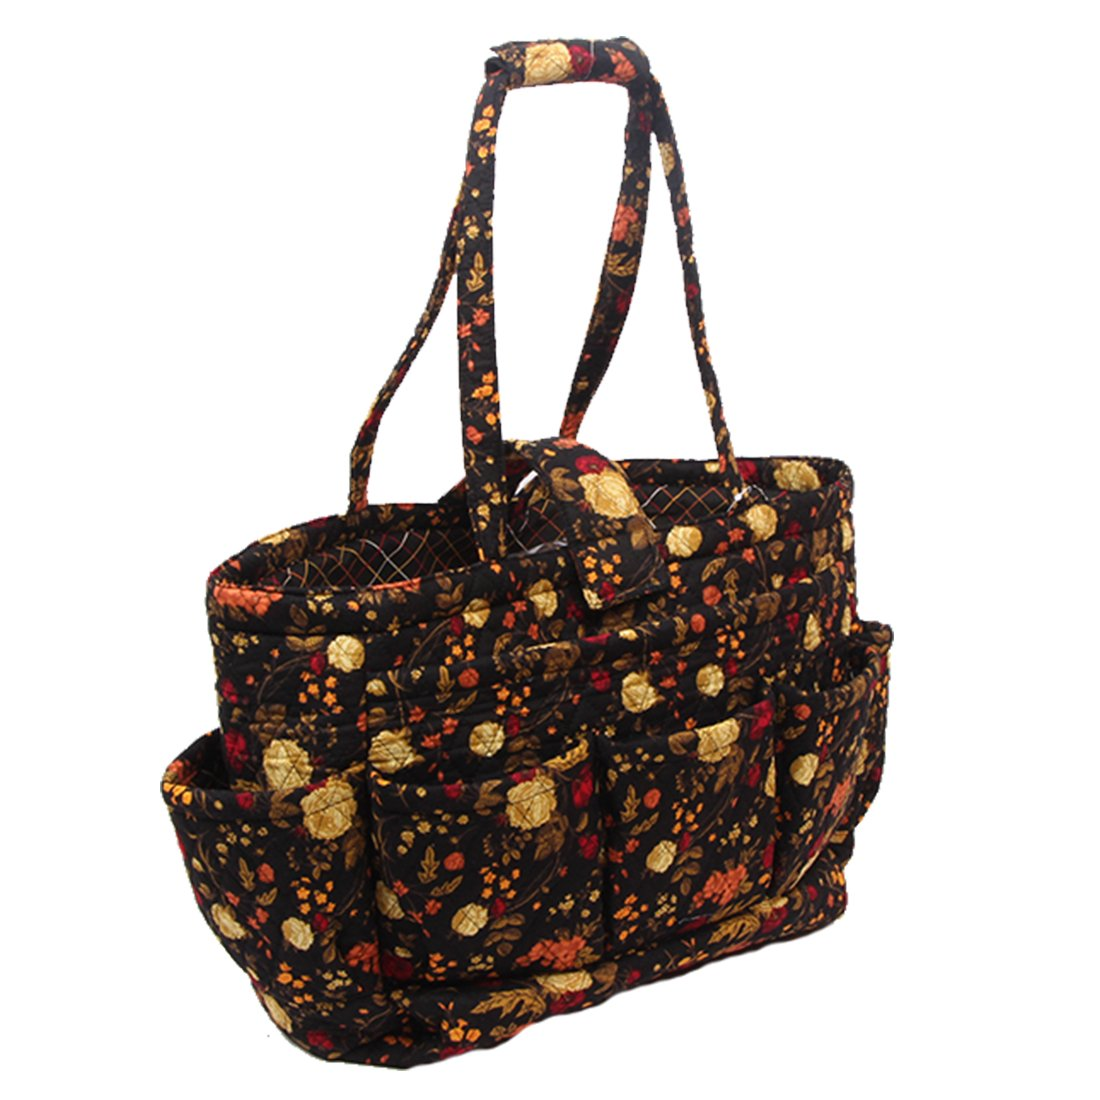 Floral Quilted Cotton Needle Bag Knitting Bag Yarn Storage Tote Yellow Rose